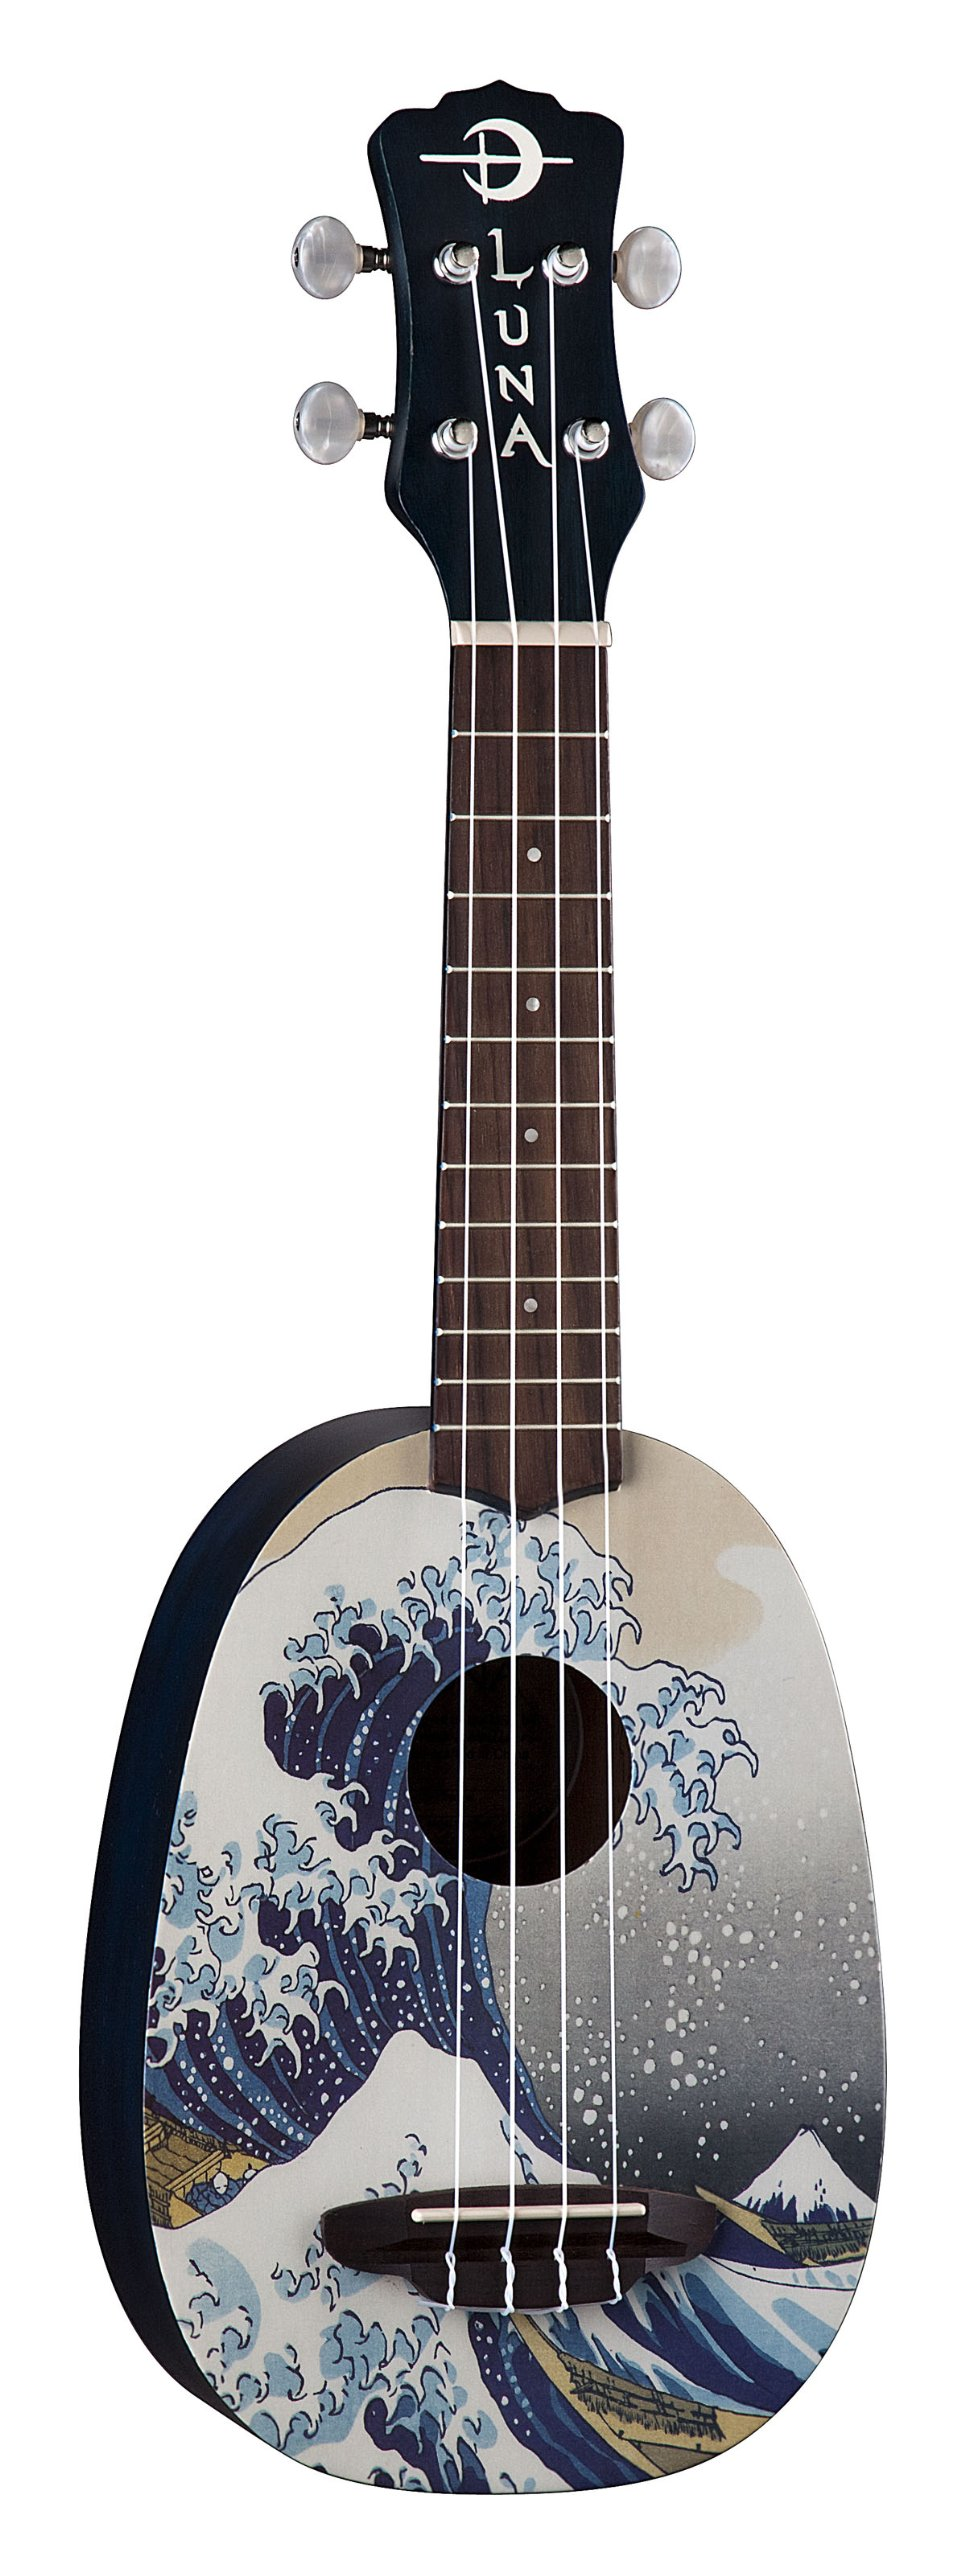 Luna Artistic Series Great Wave Soprano Ukulele by Luna Guitars (Image #1)